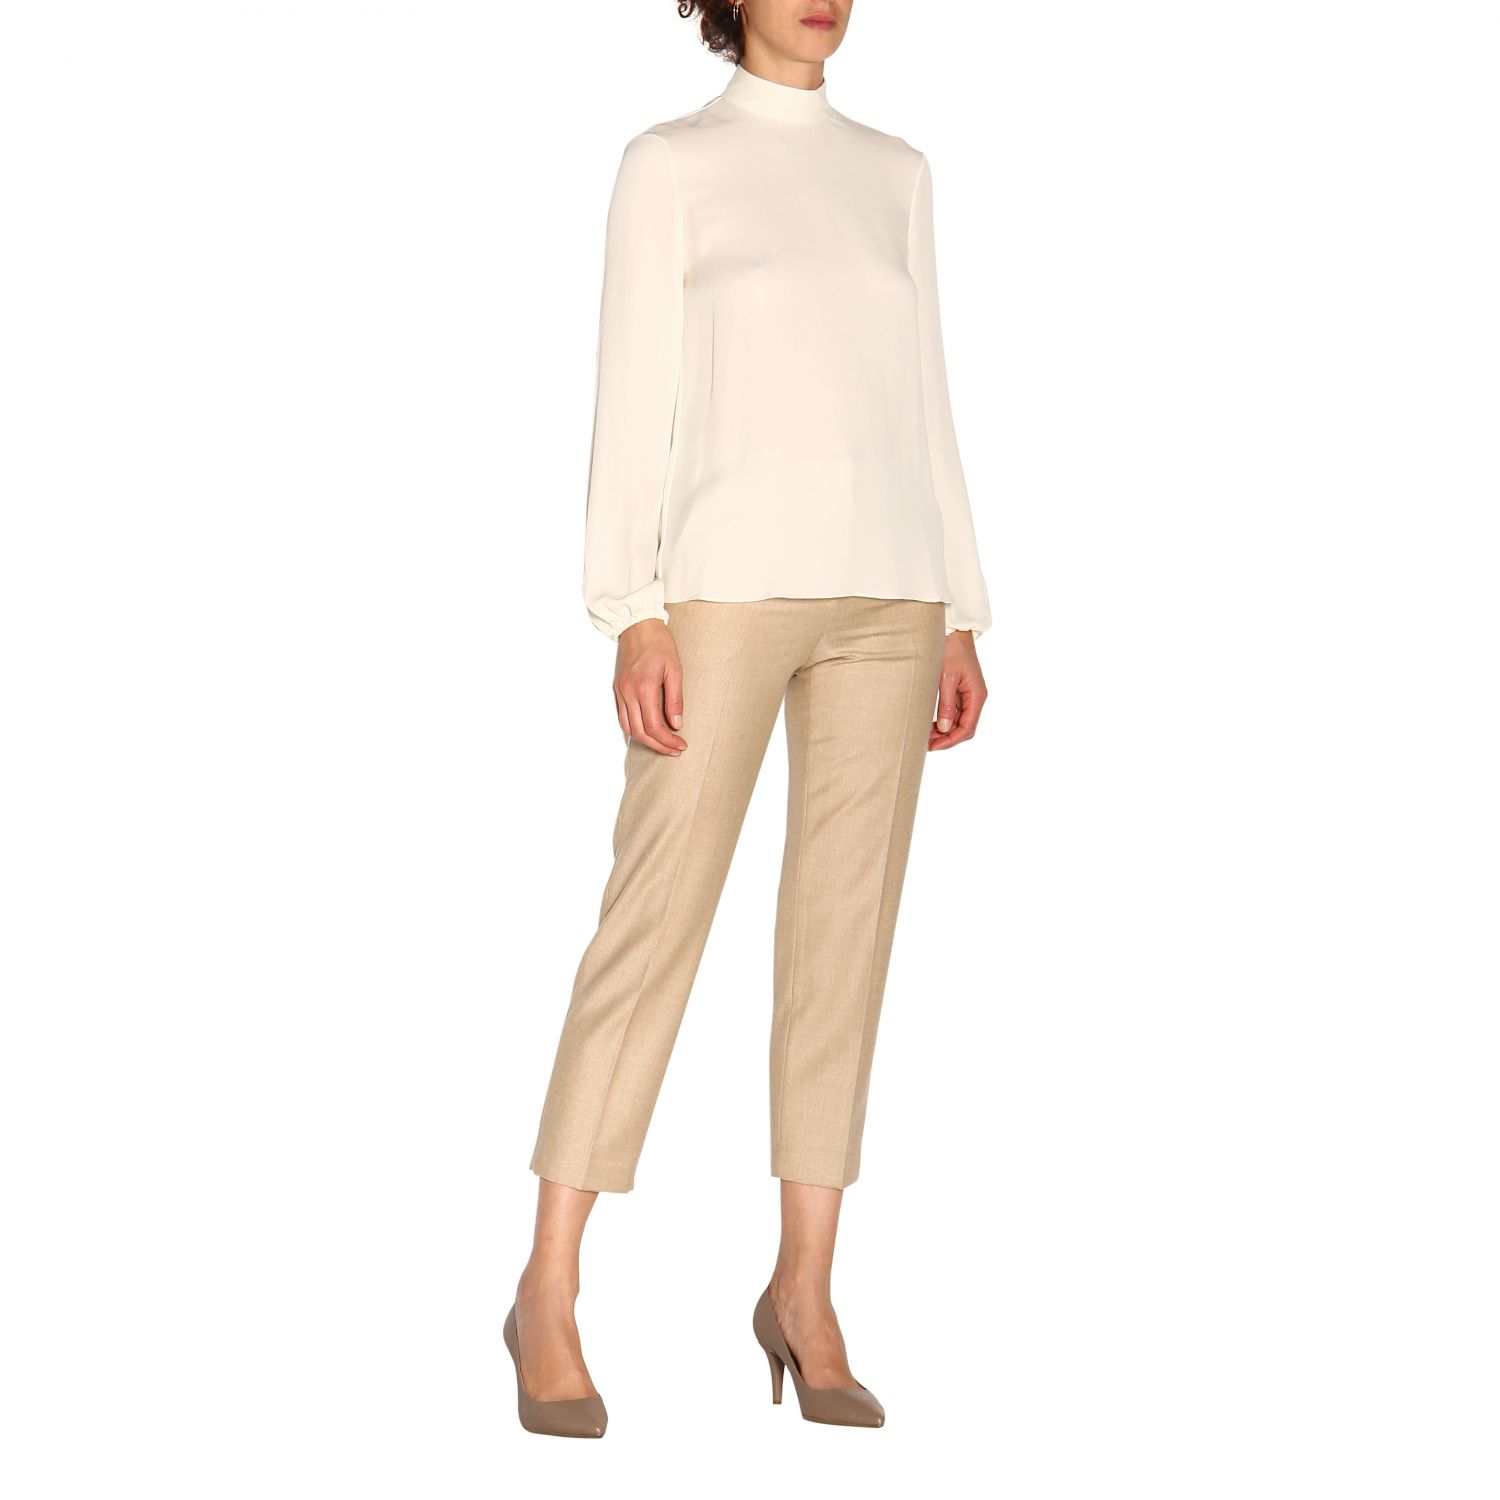 T-shirt women Theory ivory 2